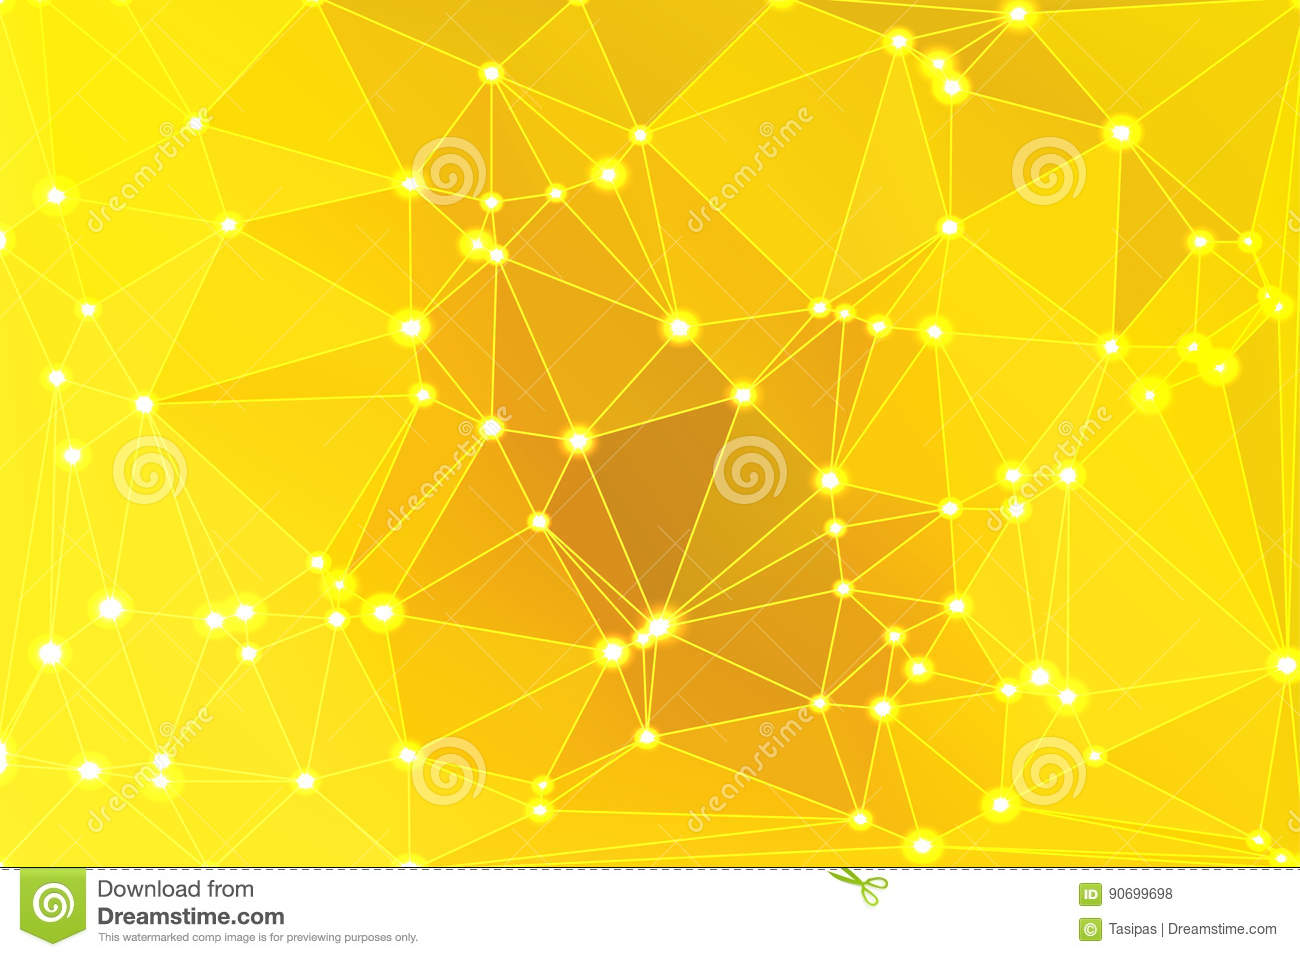 Bright golden yellow geometric background with mesh and lights